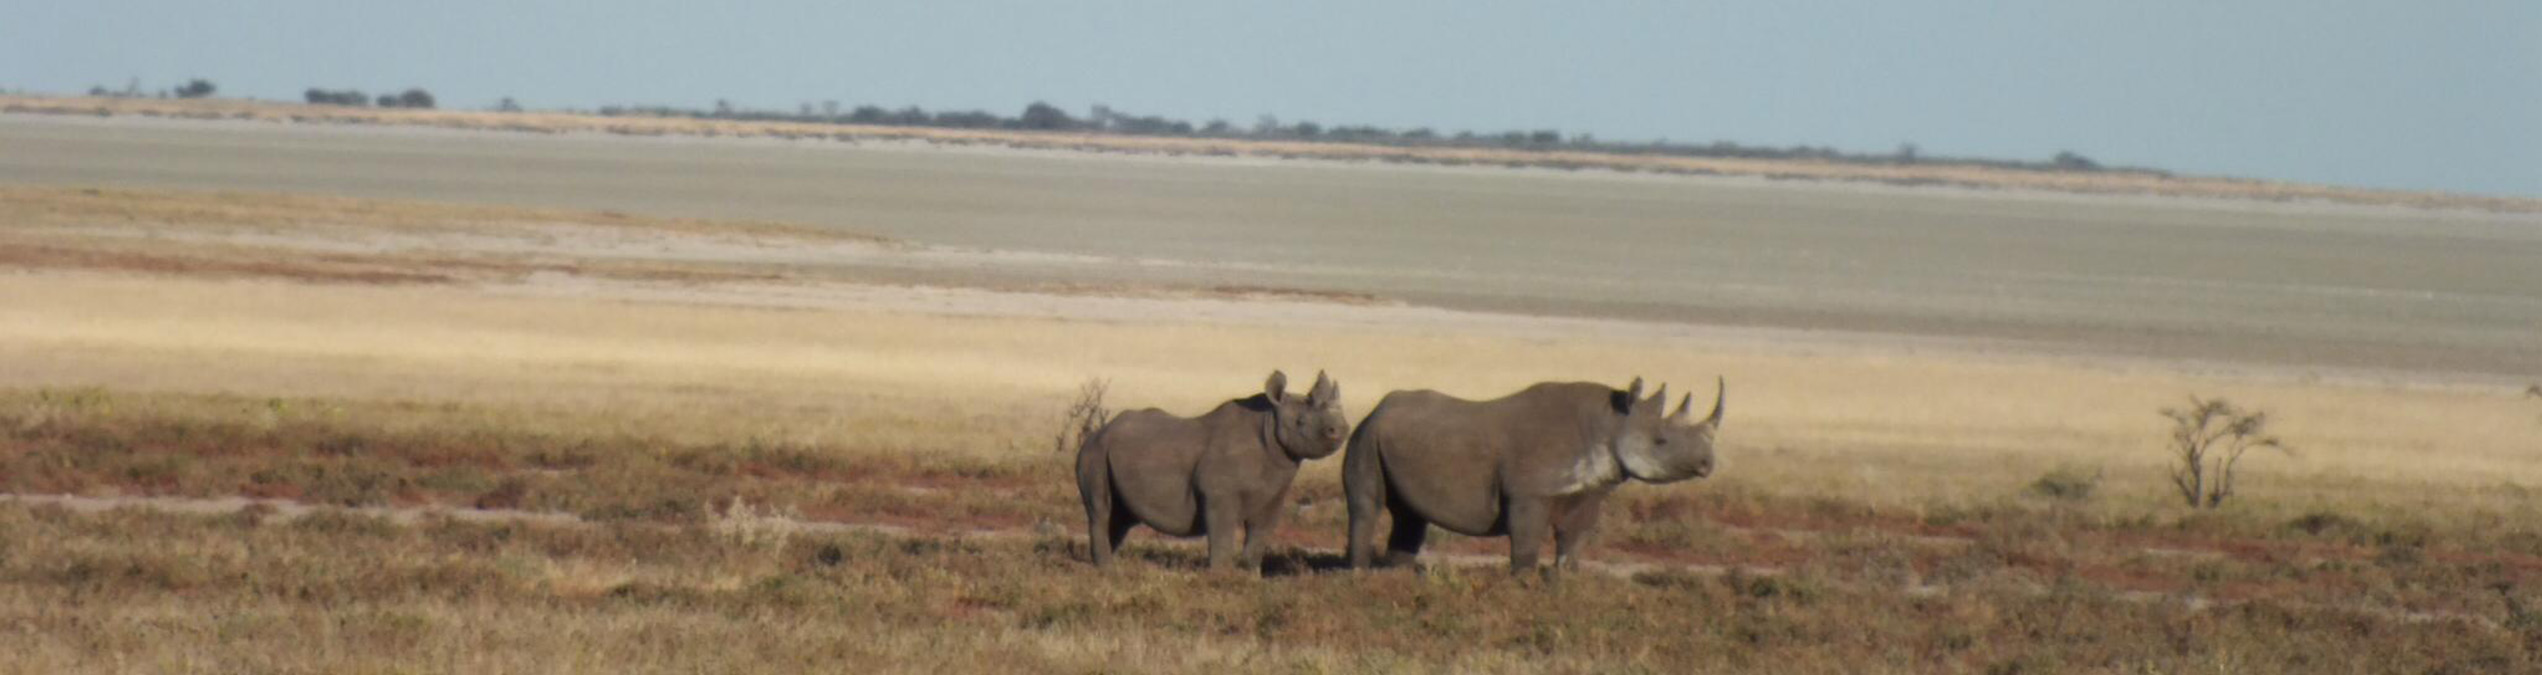 Safari Club - Namibia_Etosha_National_Park_Black_ Rhino